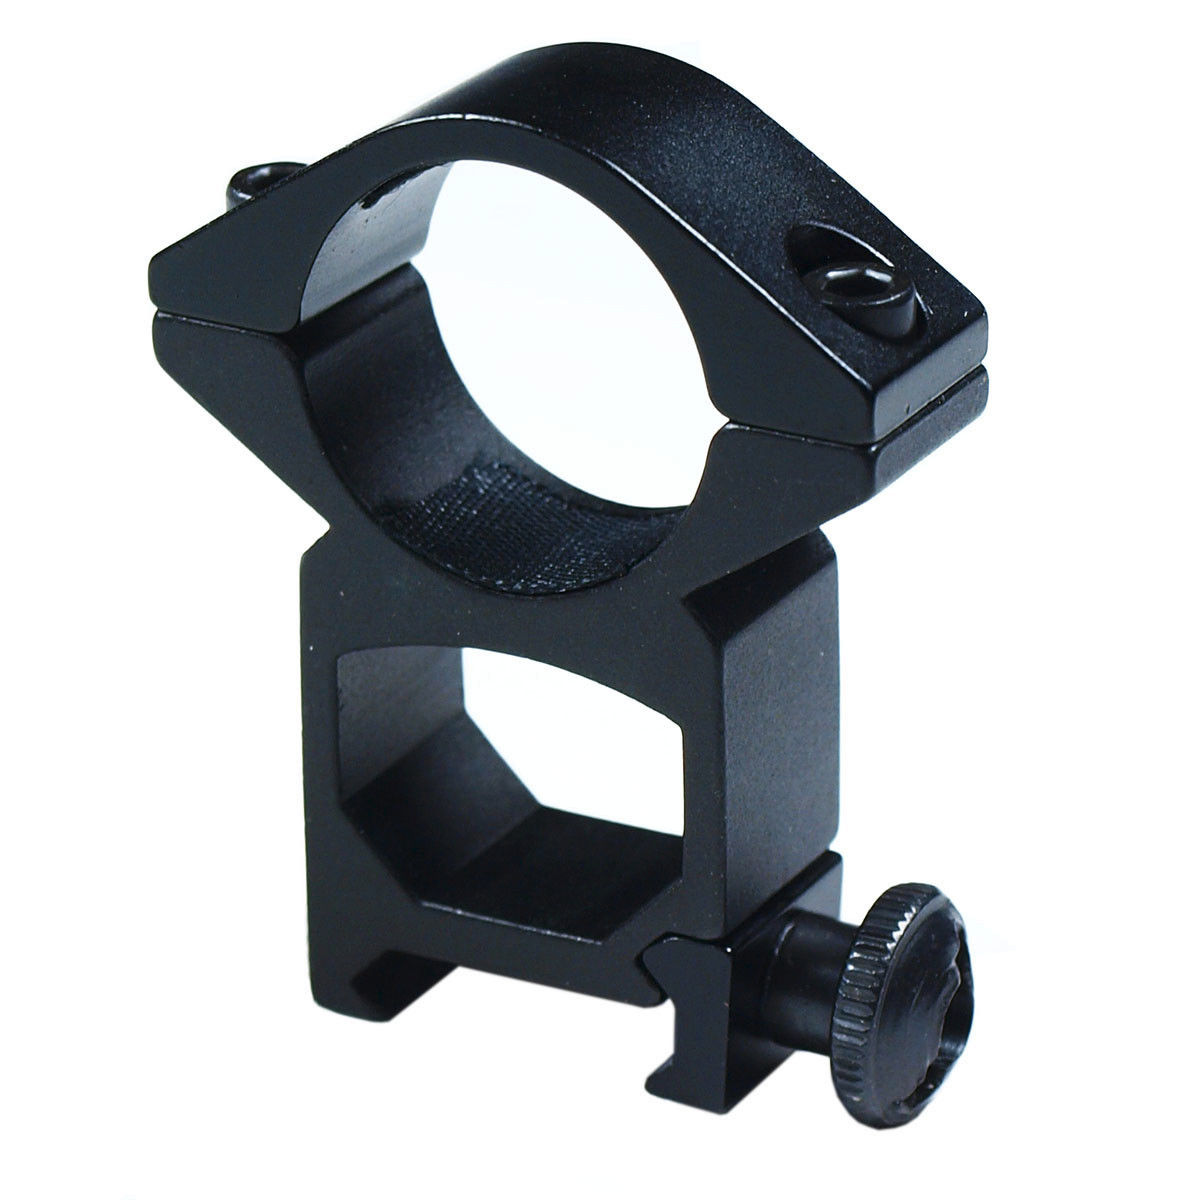 1 inch Scope Rings High Profile Picatinny Weaver Rail Laser Flashlight Mount